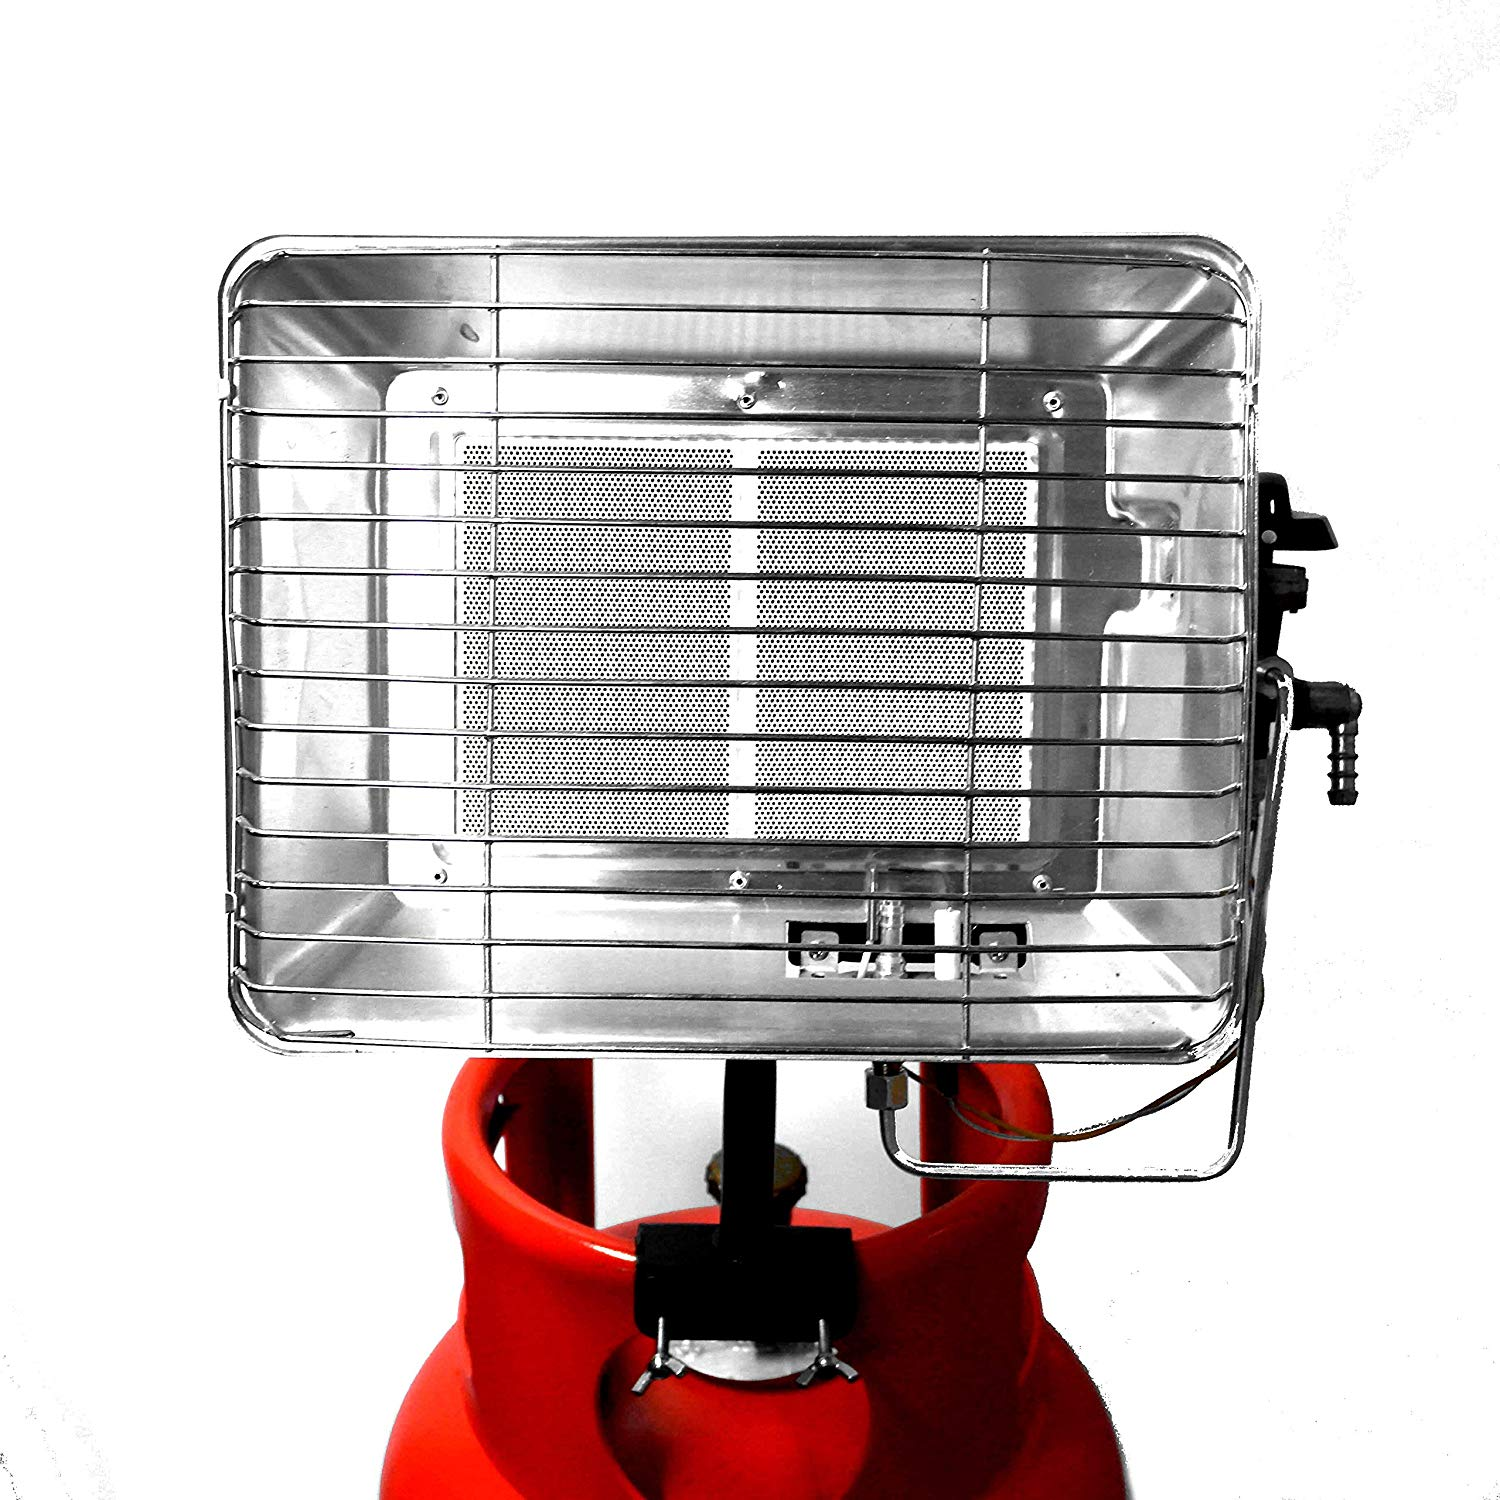 3 7kw Bottle Mounted Gas Heater With Pilot Flame Fail